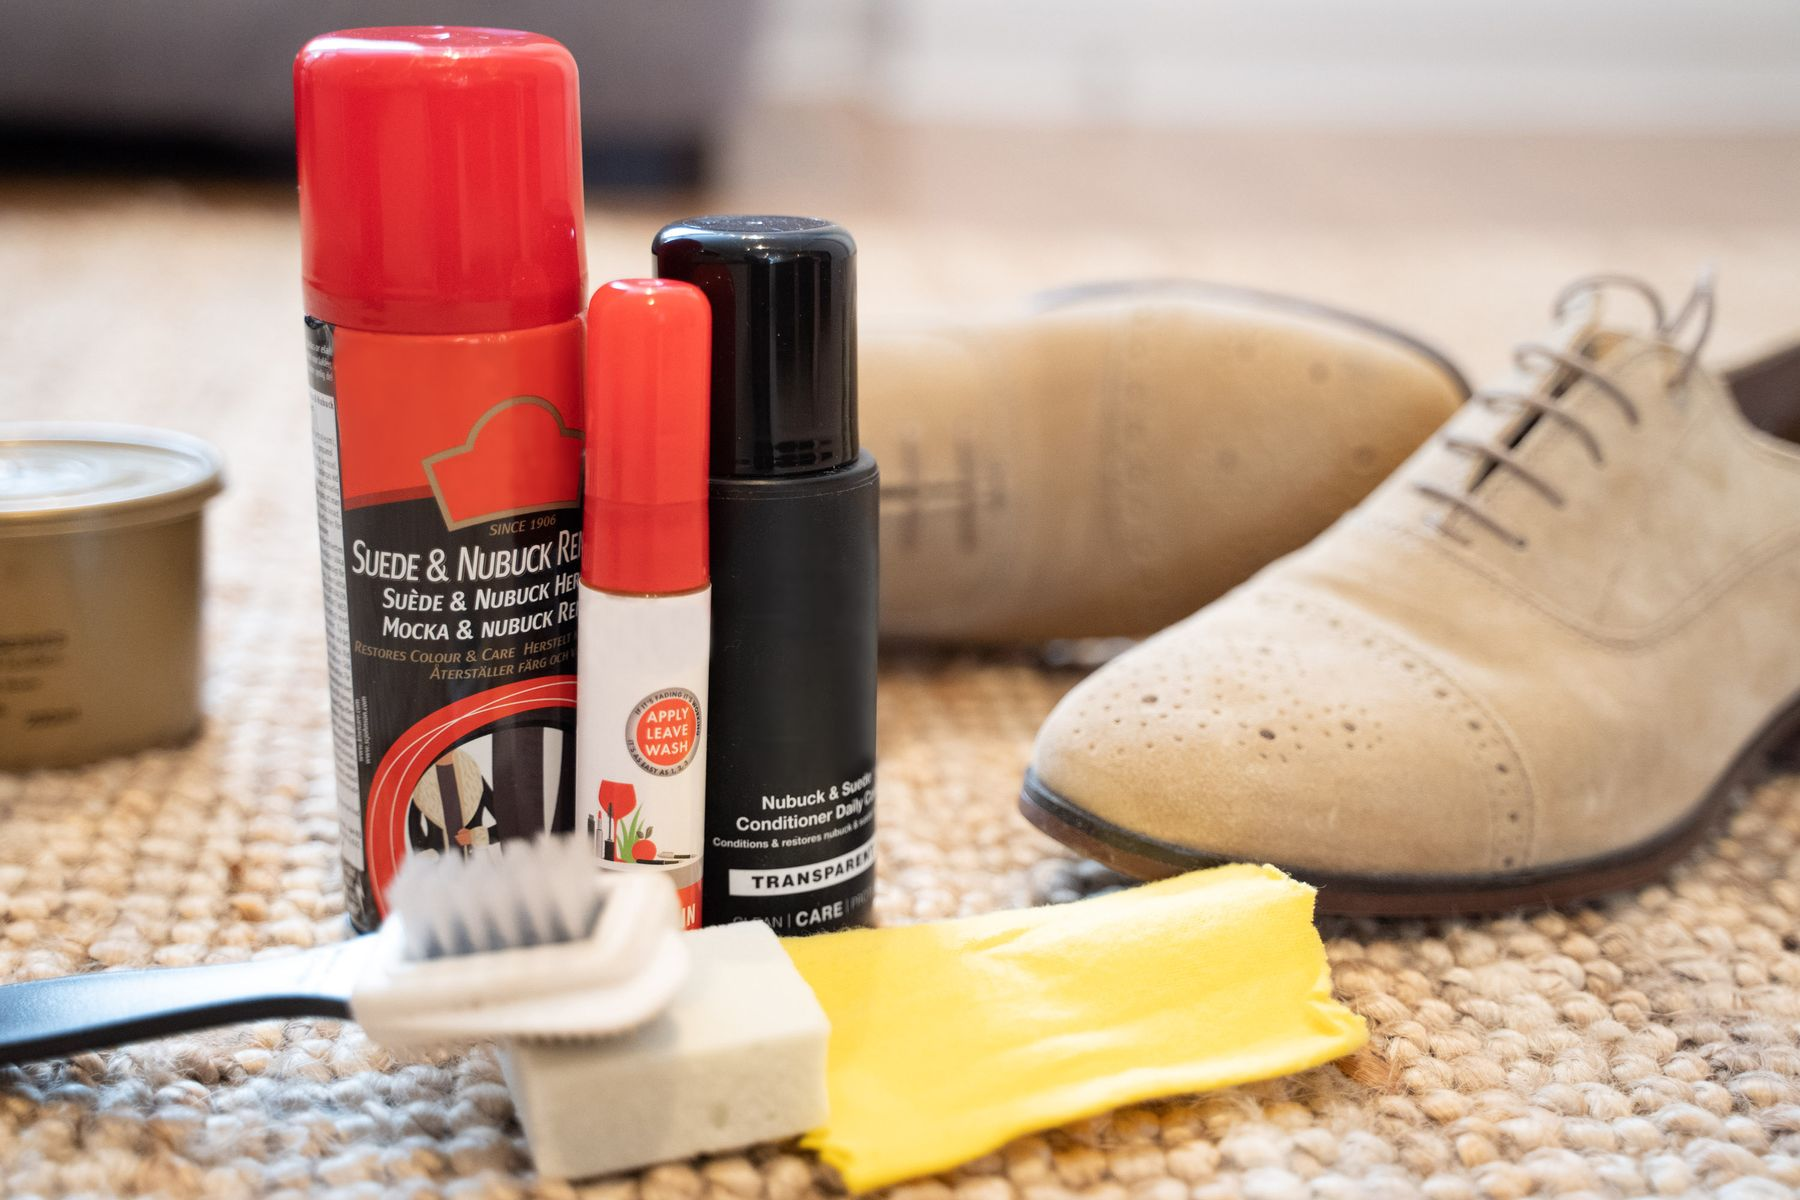 A collection of nubuck cleaning materials, including a nubuck brush, cloth and block